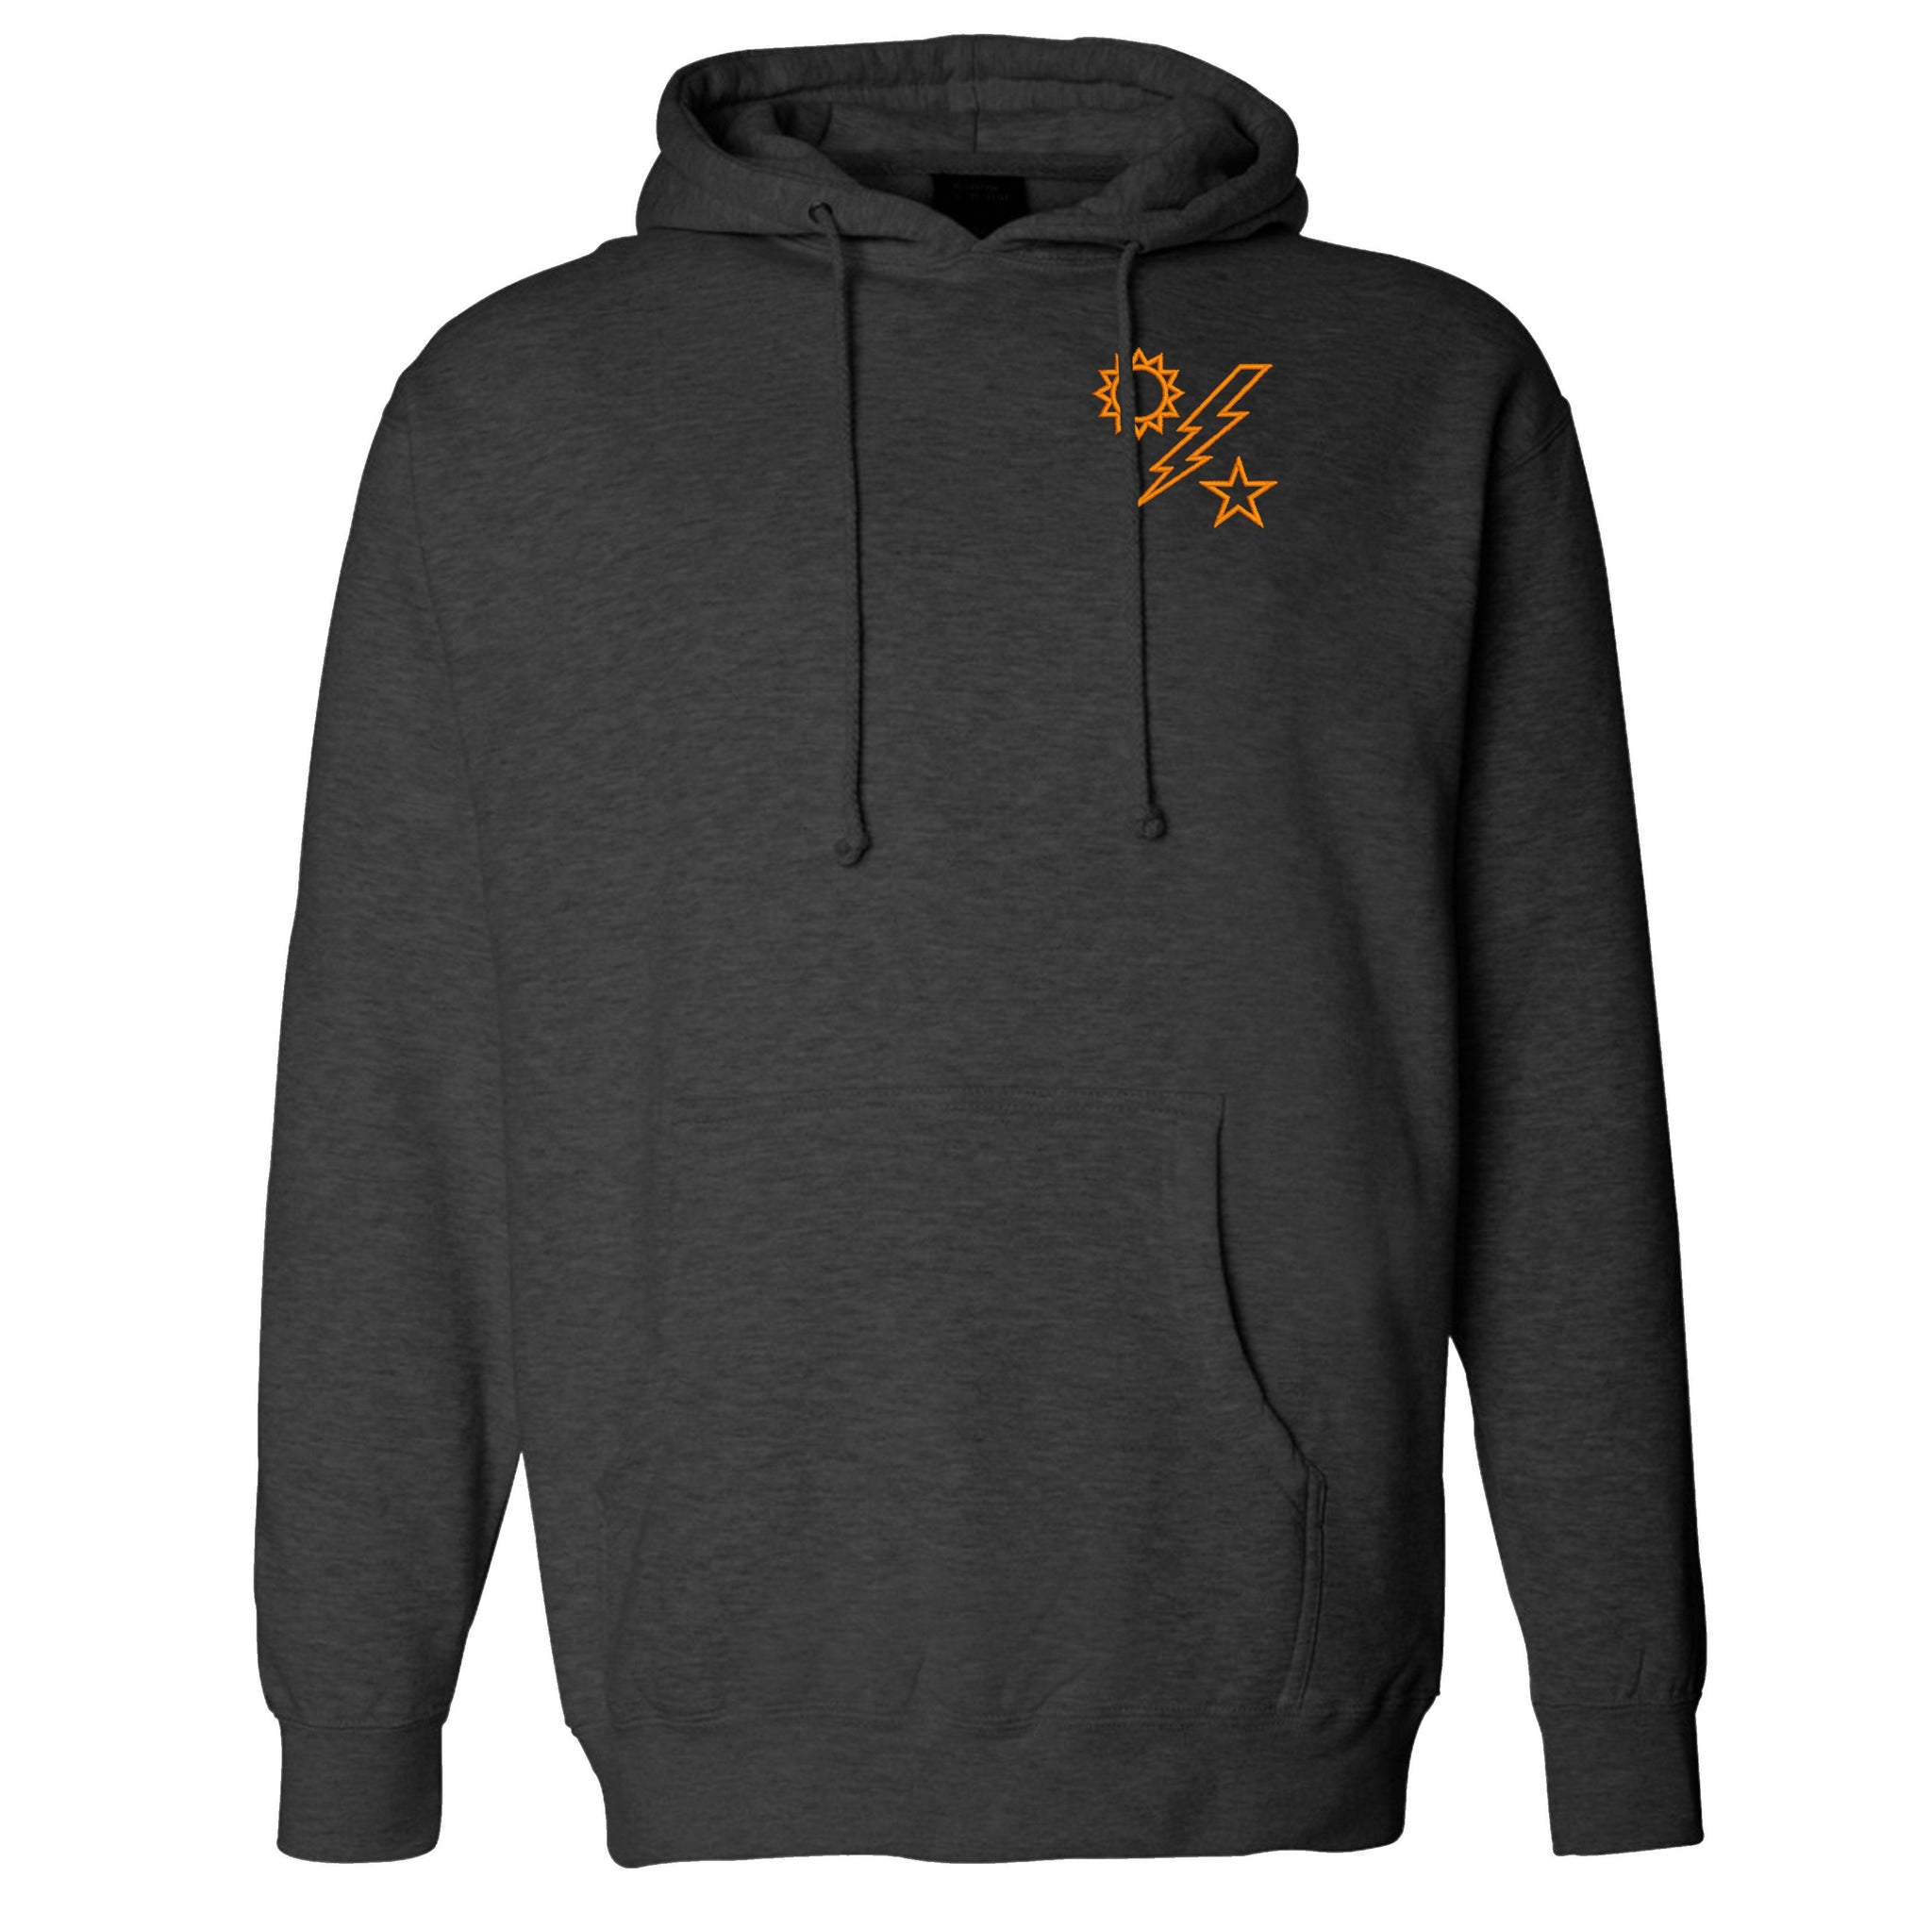 75th DUI Embroidered Hoodie